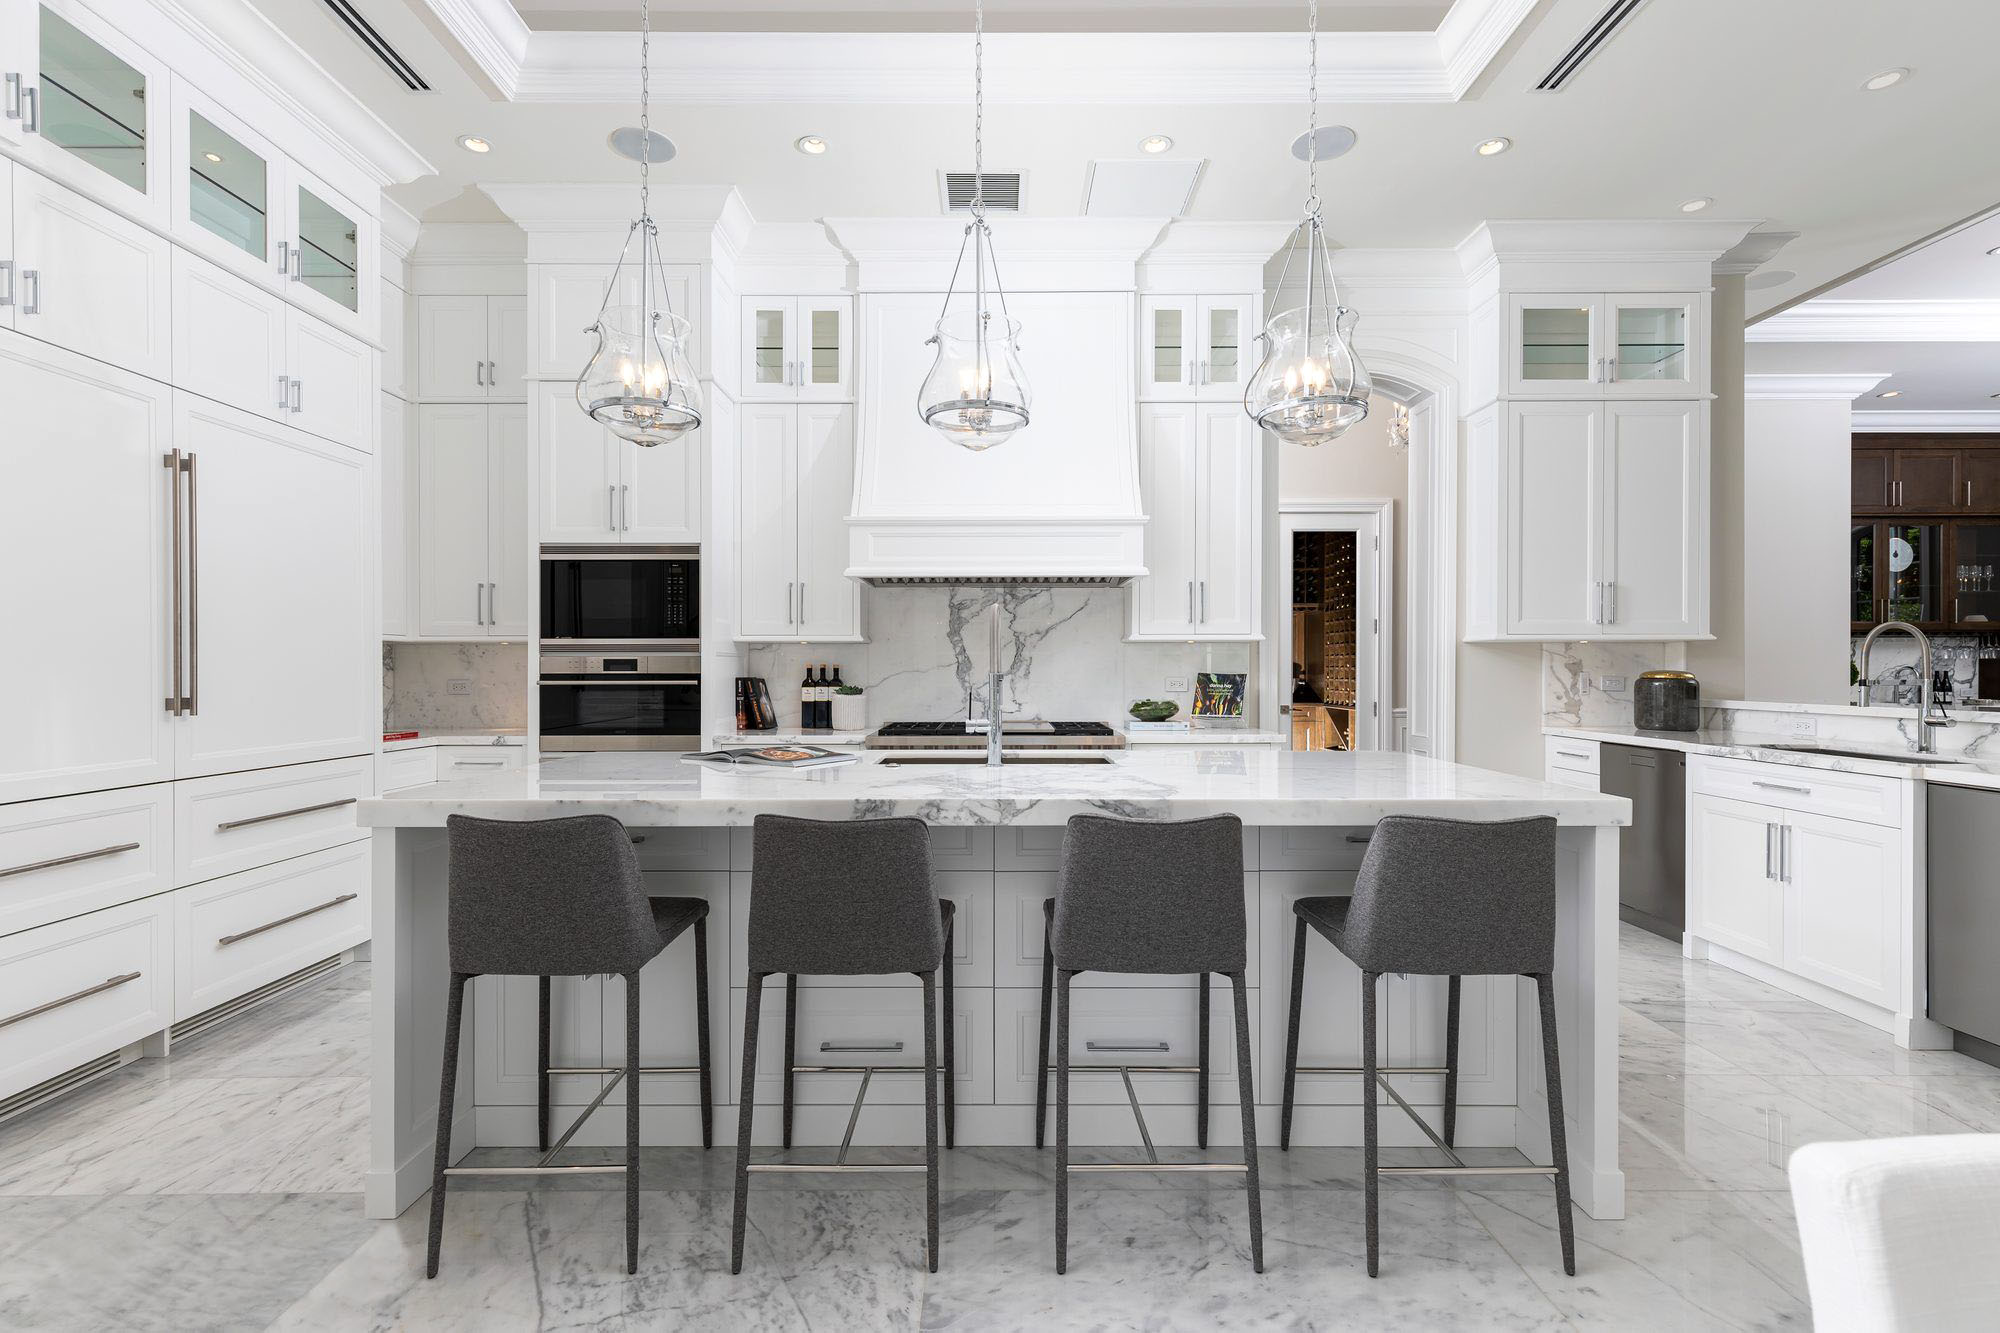 Beautiful luxury kitchen with tons of white, gray and marble.